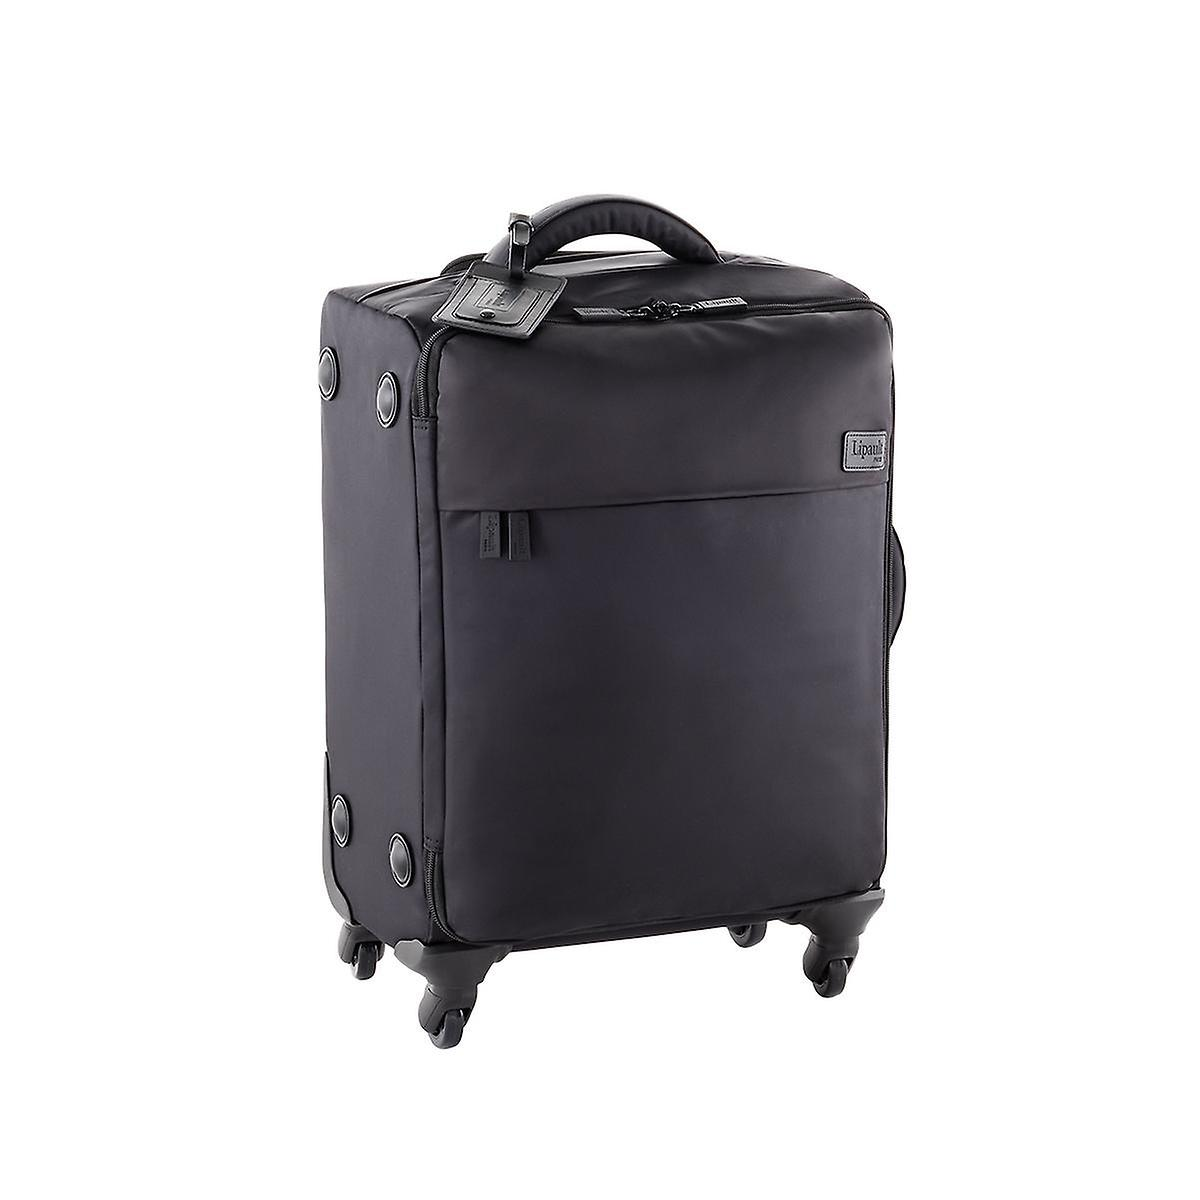 "Lipault Black 22"" Paris Luggage Solution Starter Kit"